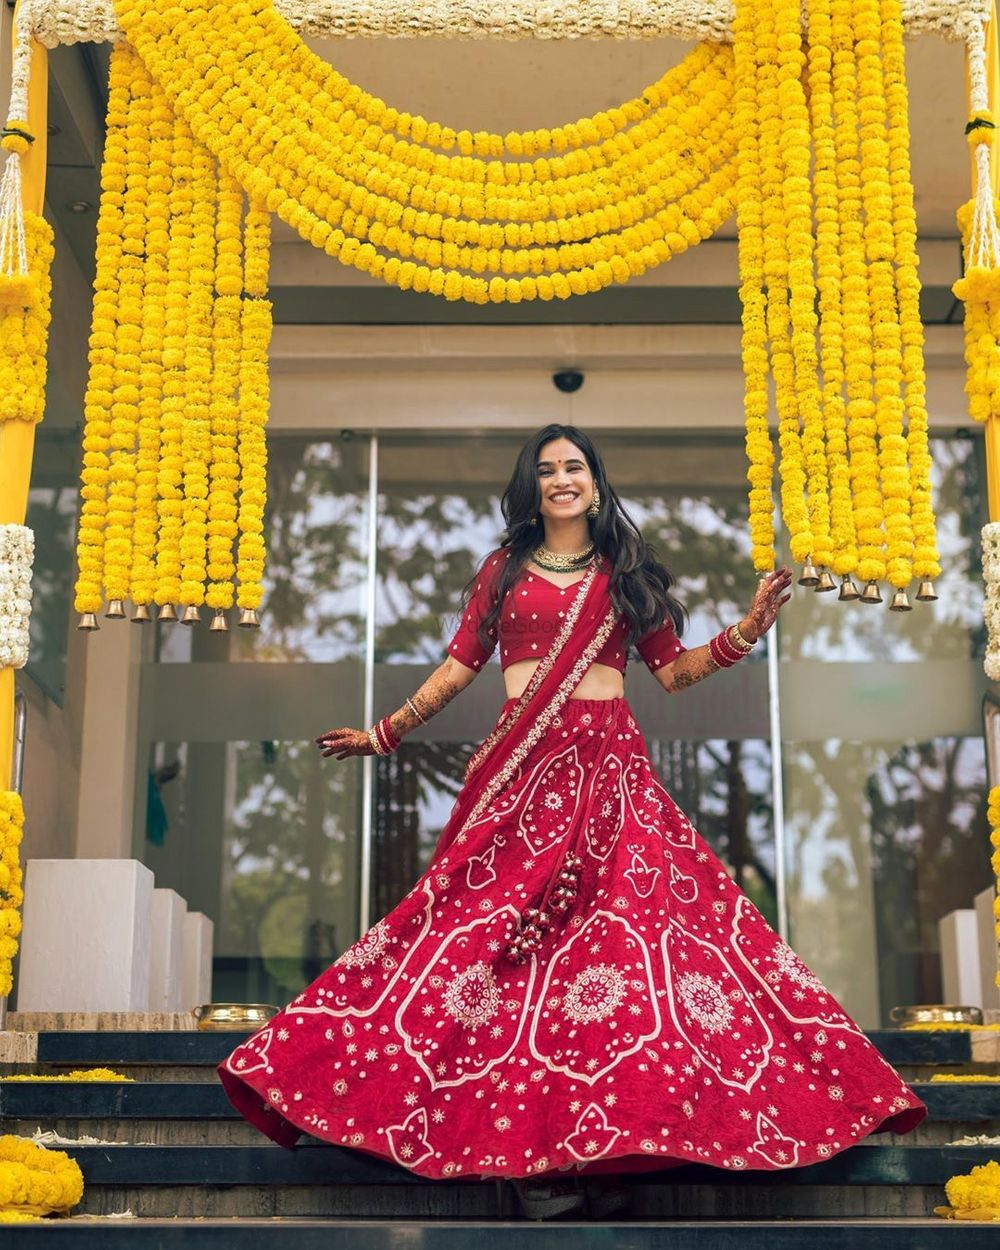 Photo of Bride twirling in her red lehenga.